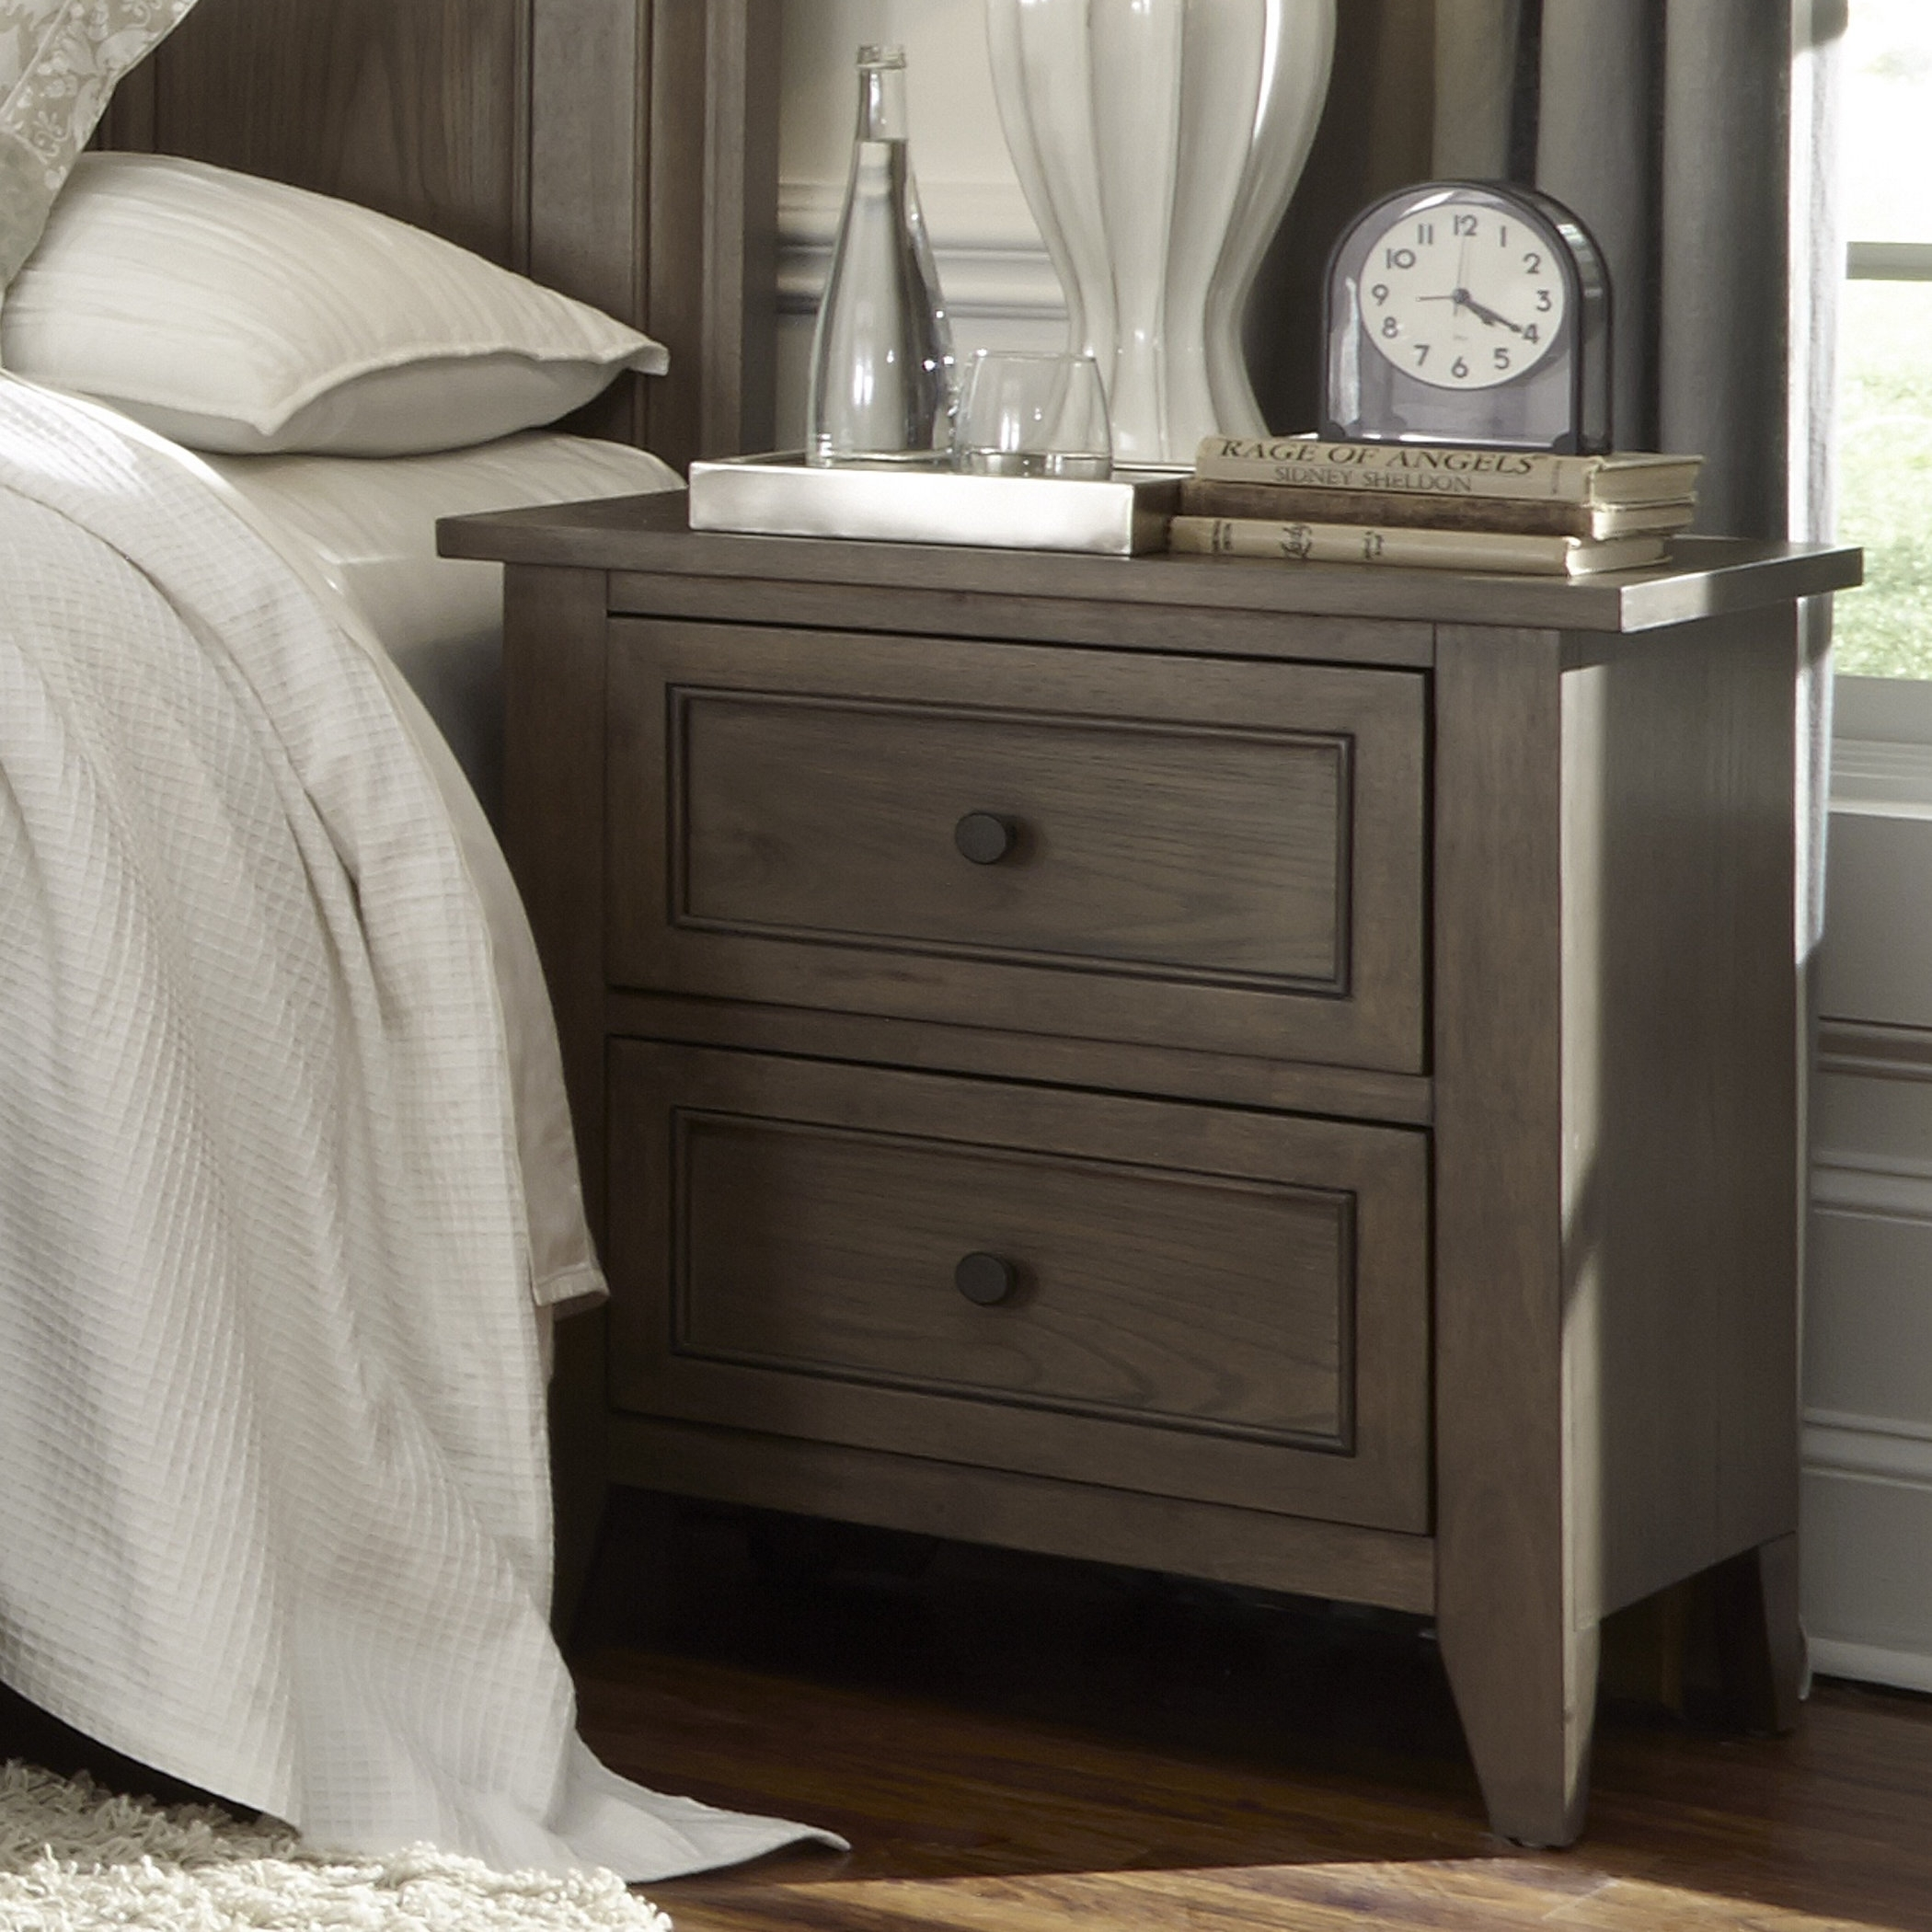 2 Drawer Mirrored Nightstand Madison Art Center Design